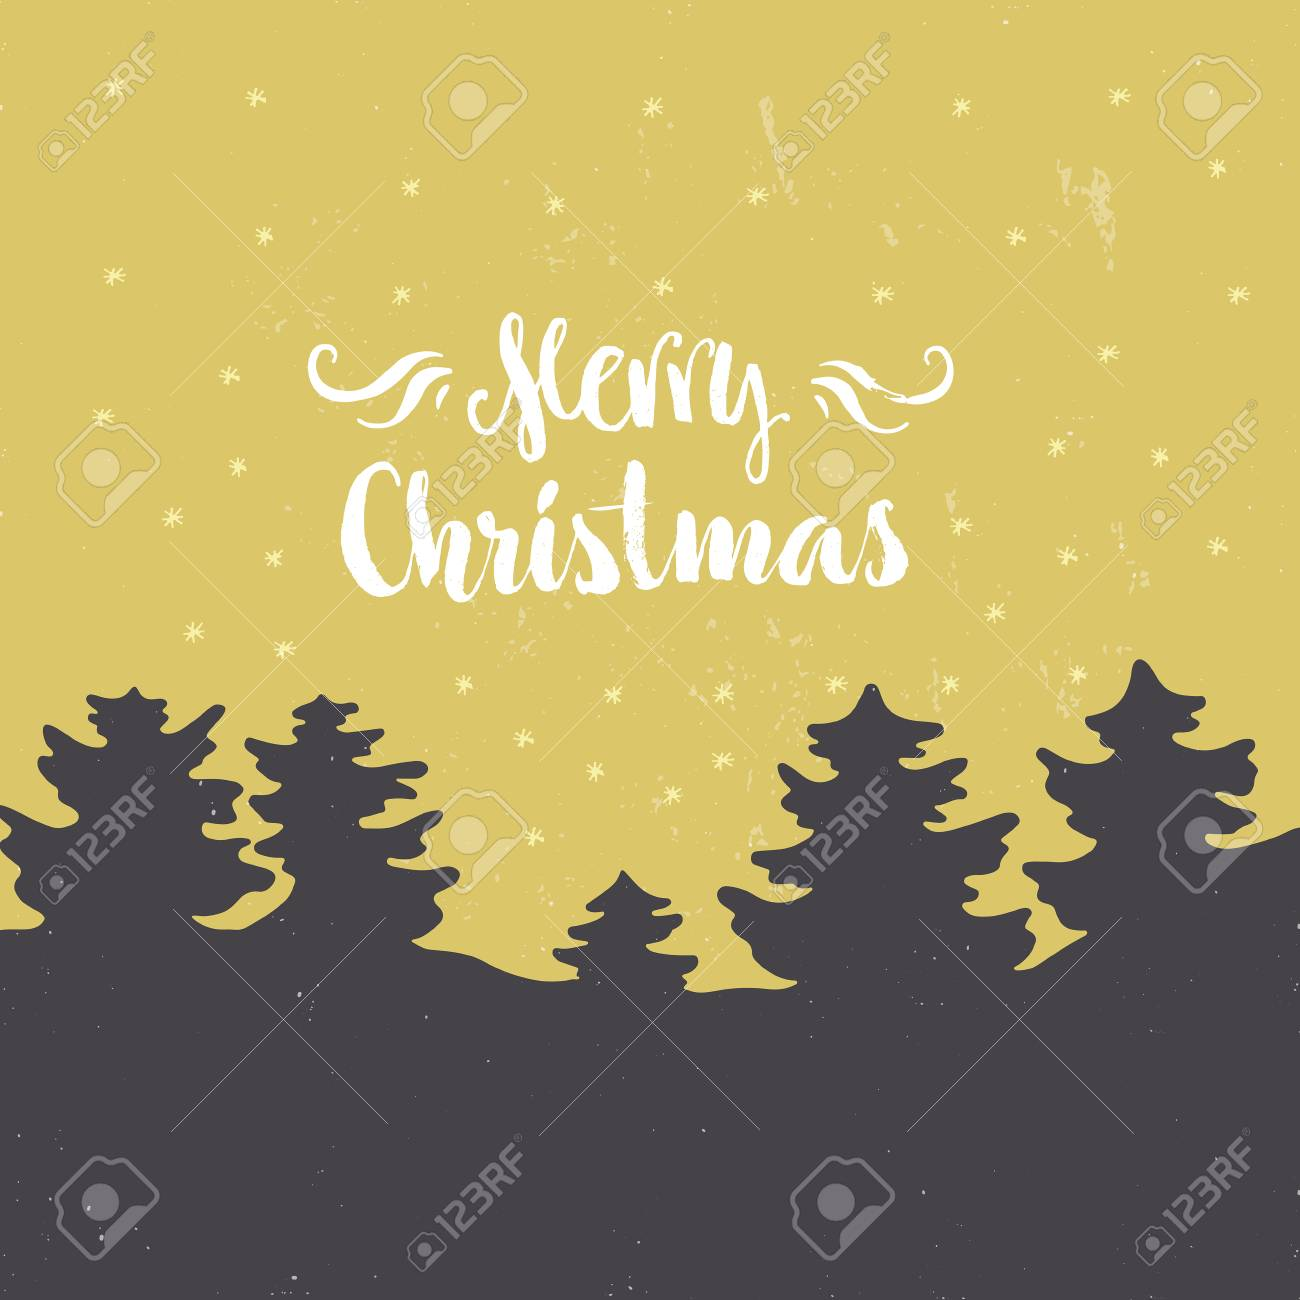 Vector Clipart For Christmas Cards And Photo Overlays With Handdrawn ...